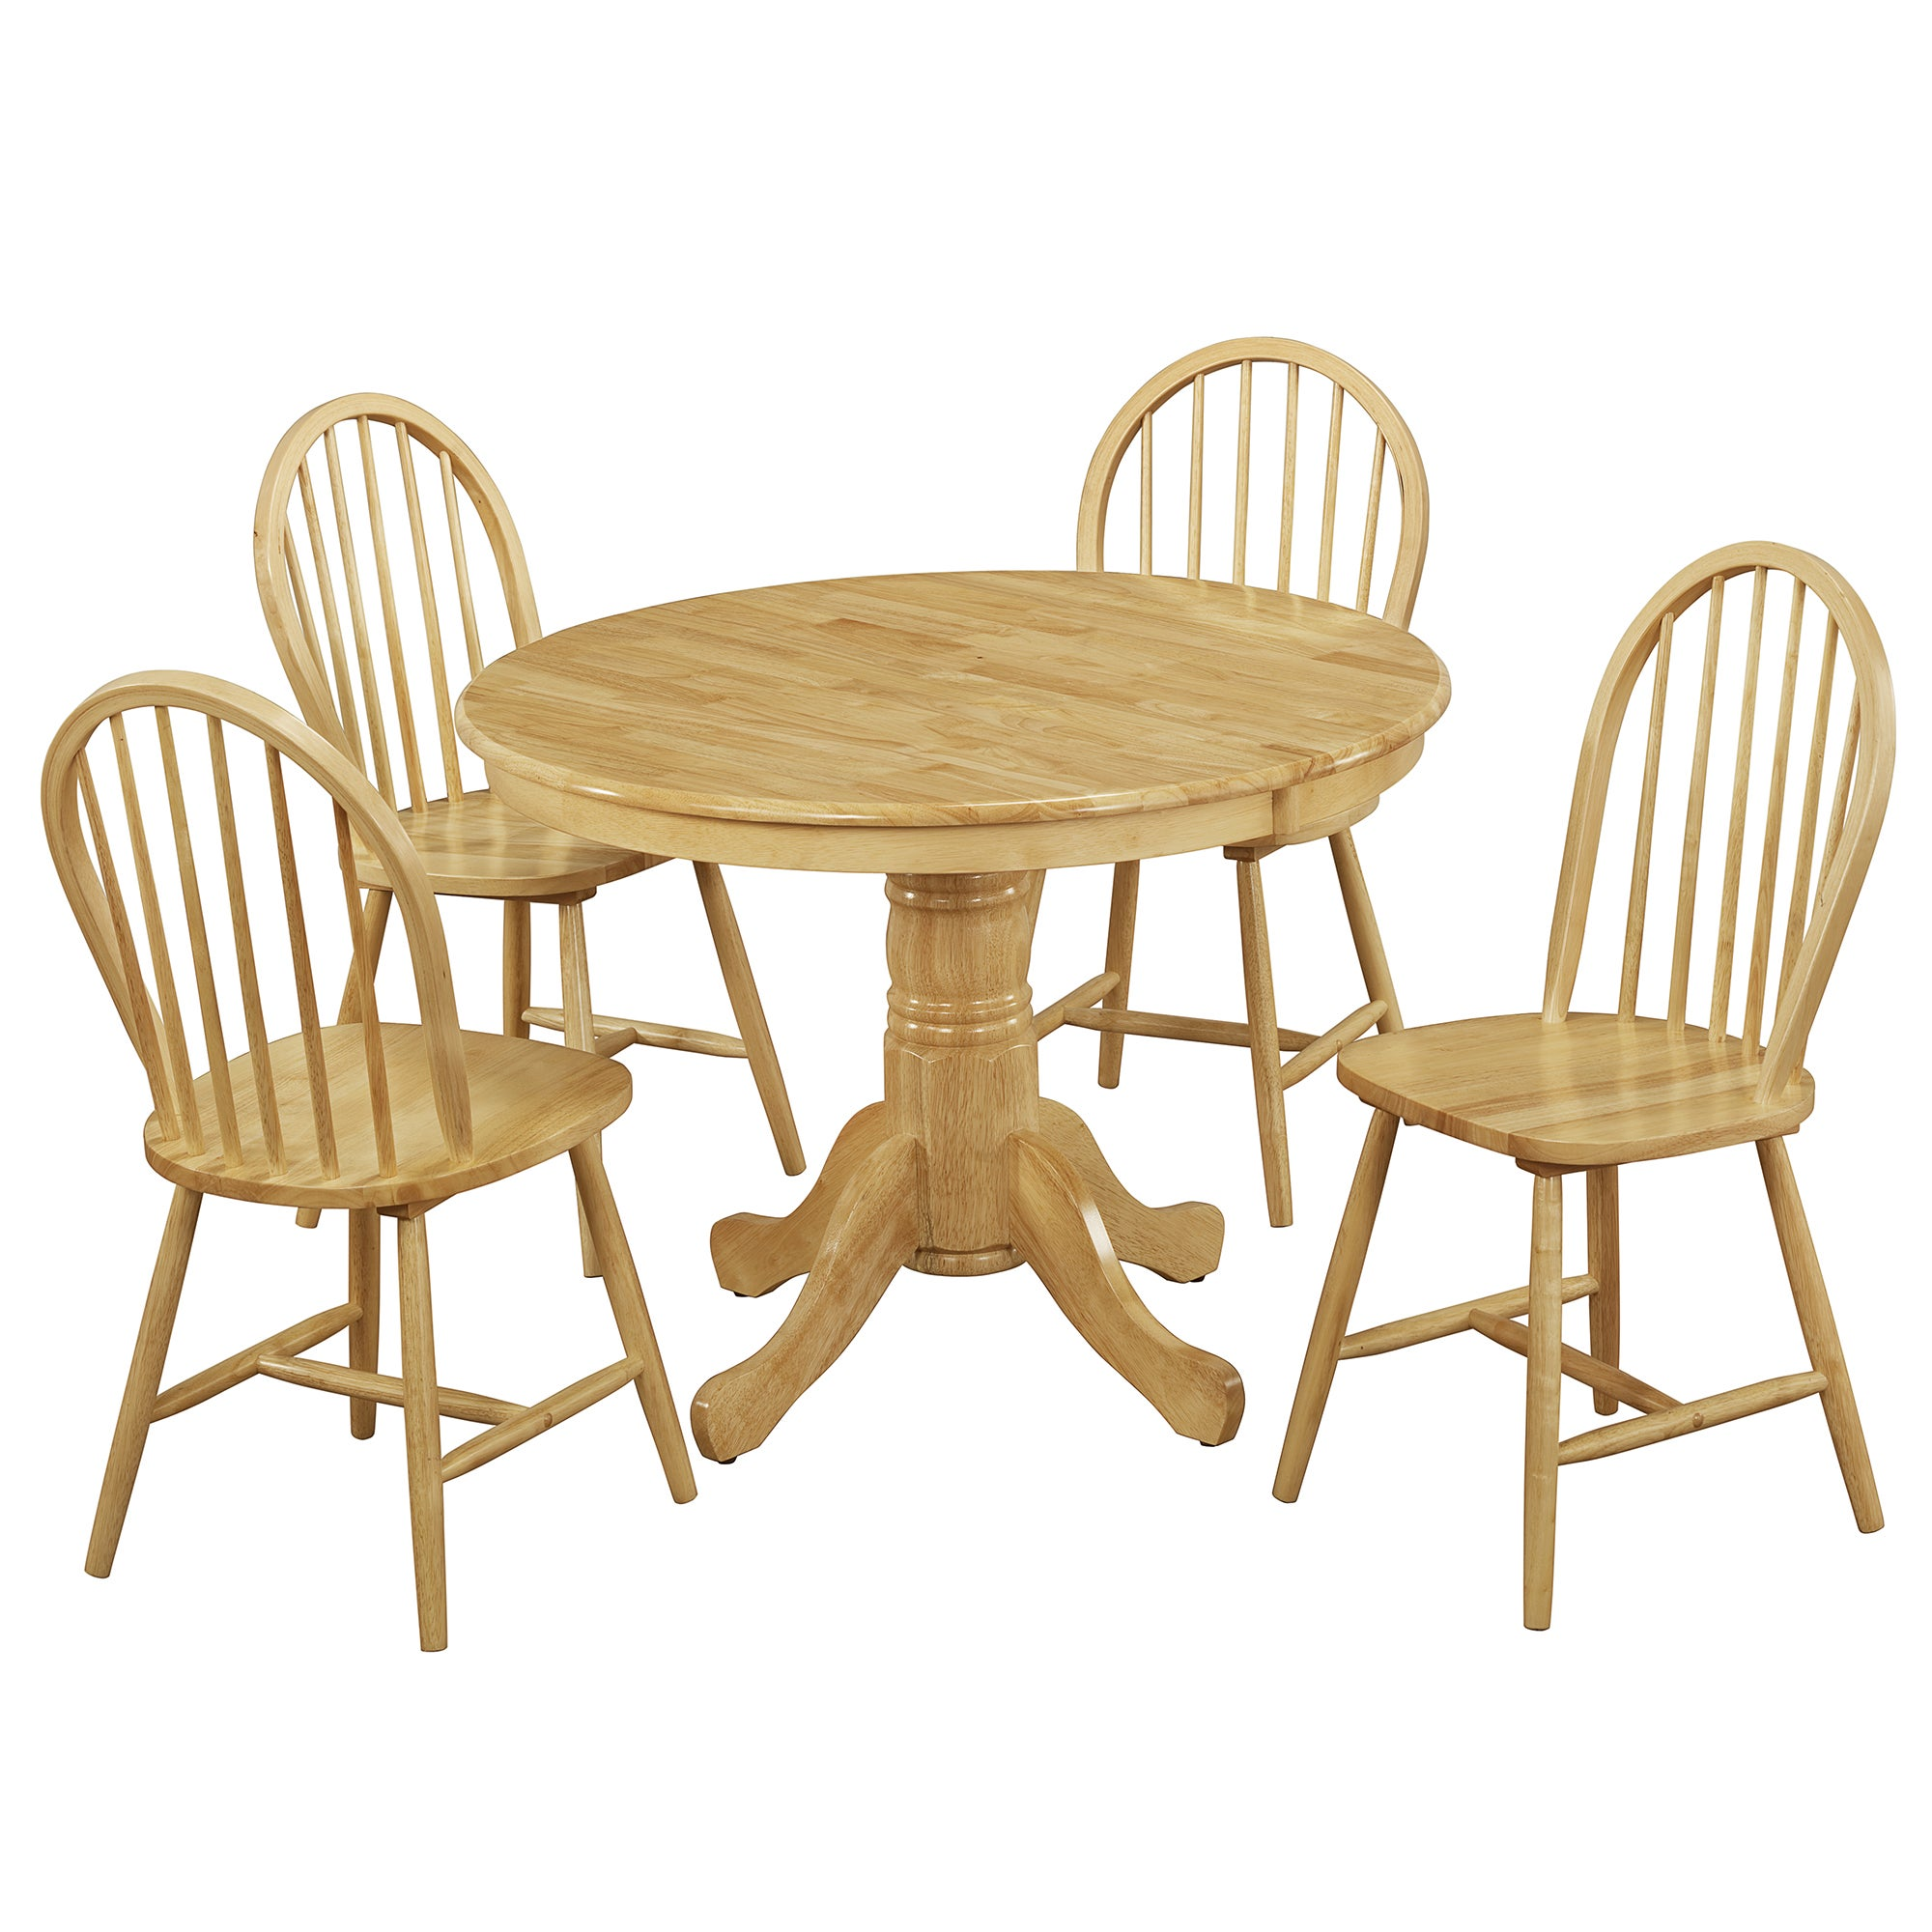 Cotswolds Natural Round Table and Chairs